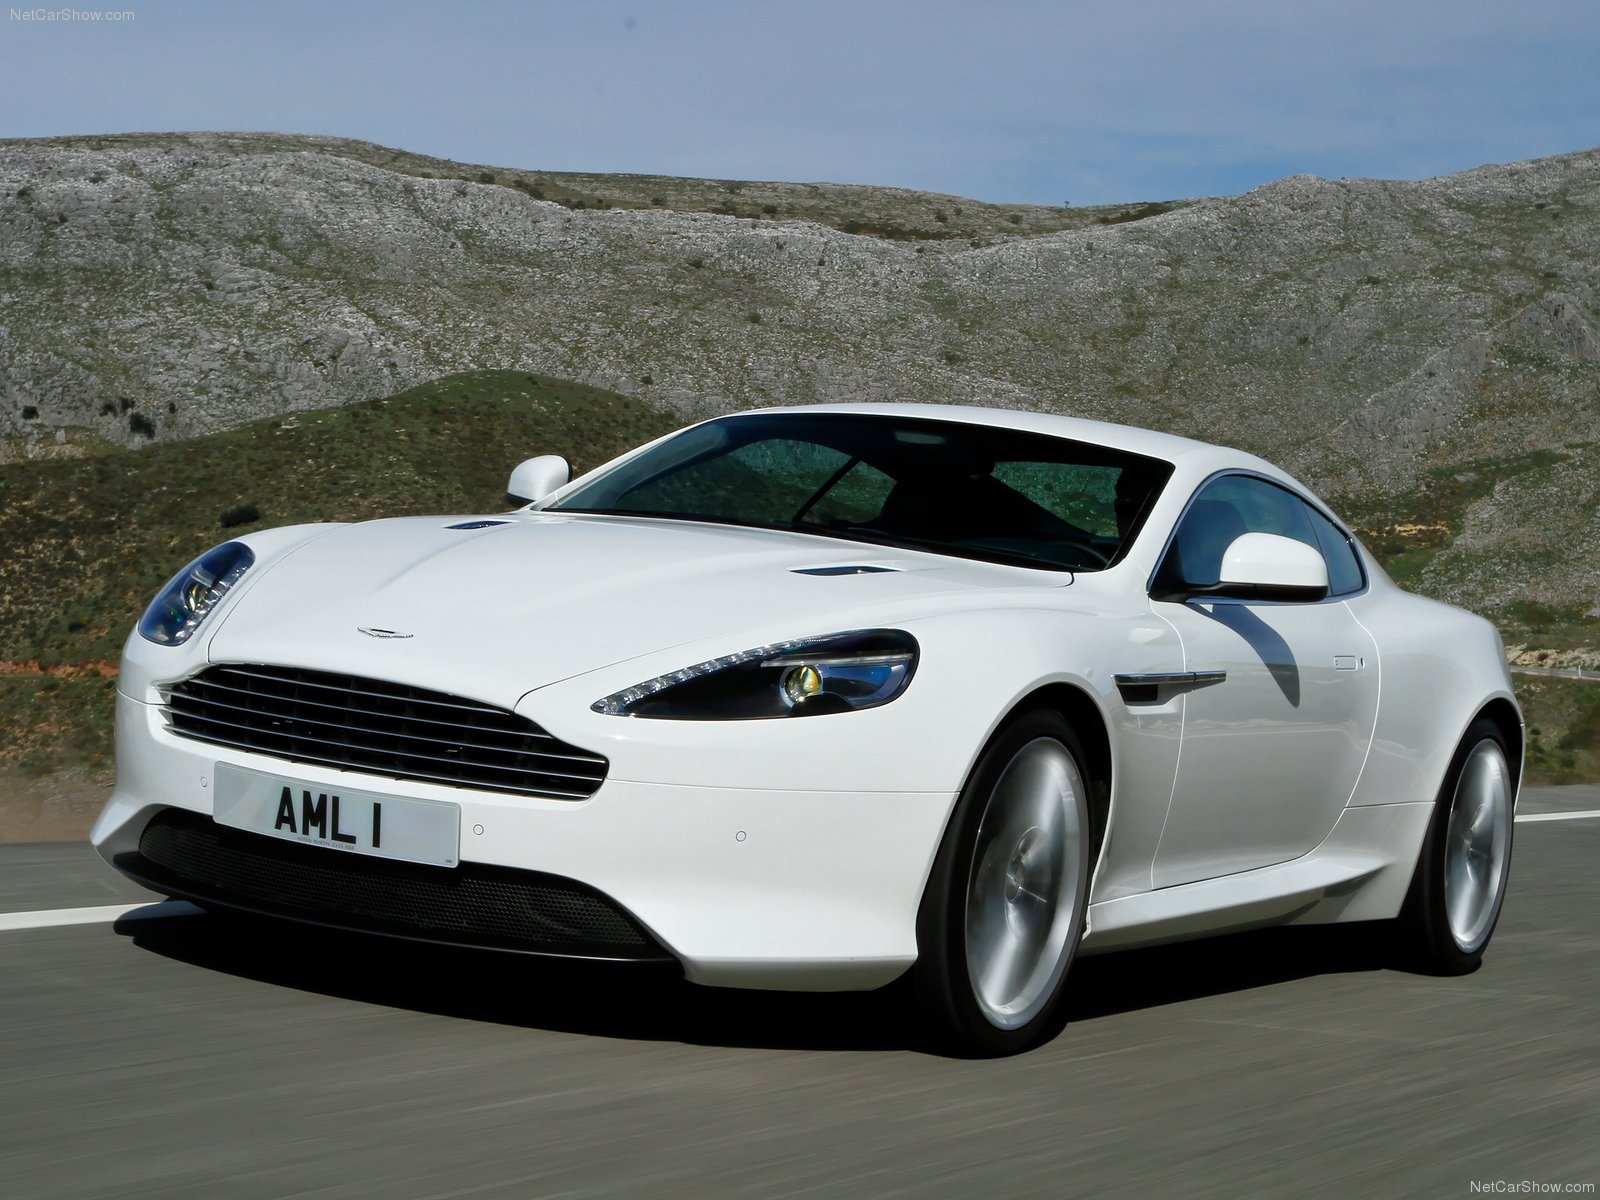 Aston martin virage photo - 1